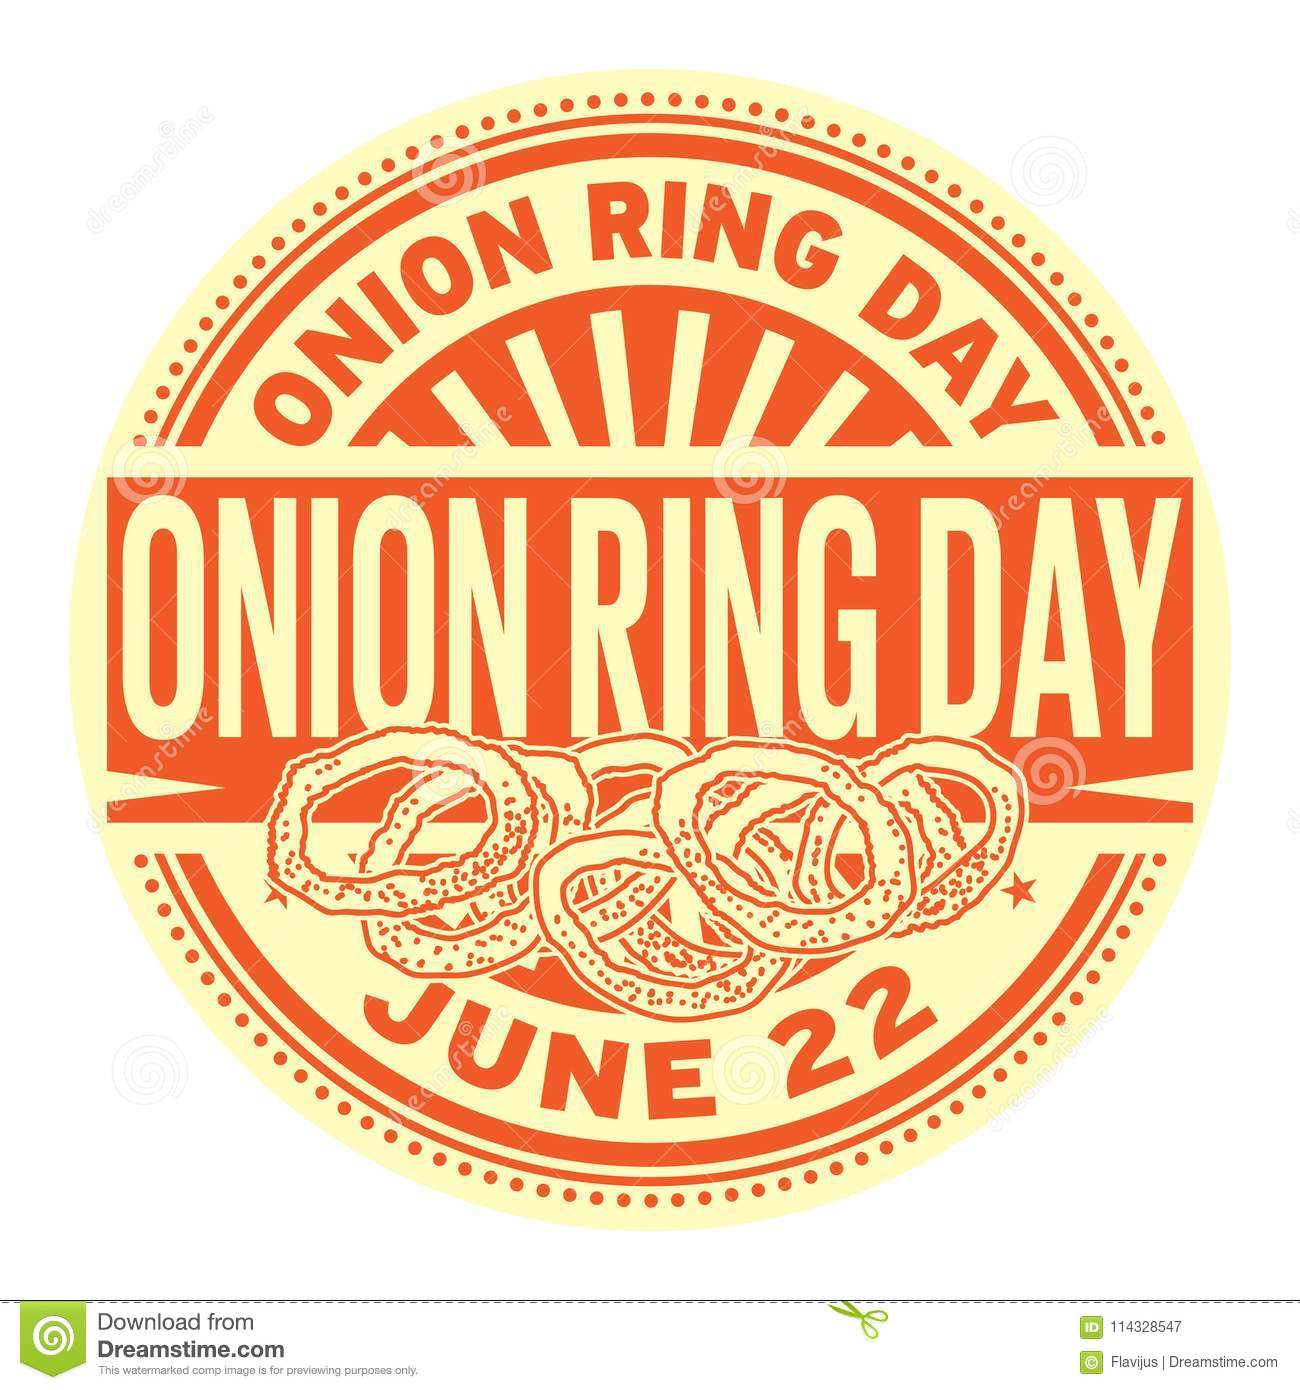 Onion - Clipart - Onion Ring Clipart , Free Transparent Clipart - ClipartKey